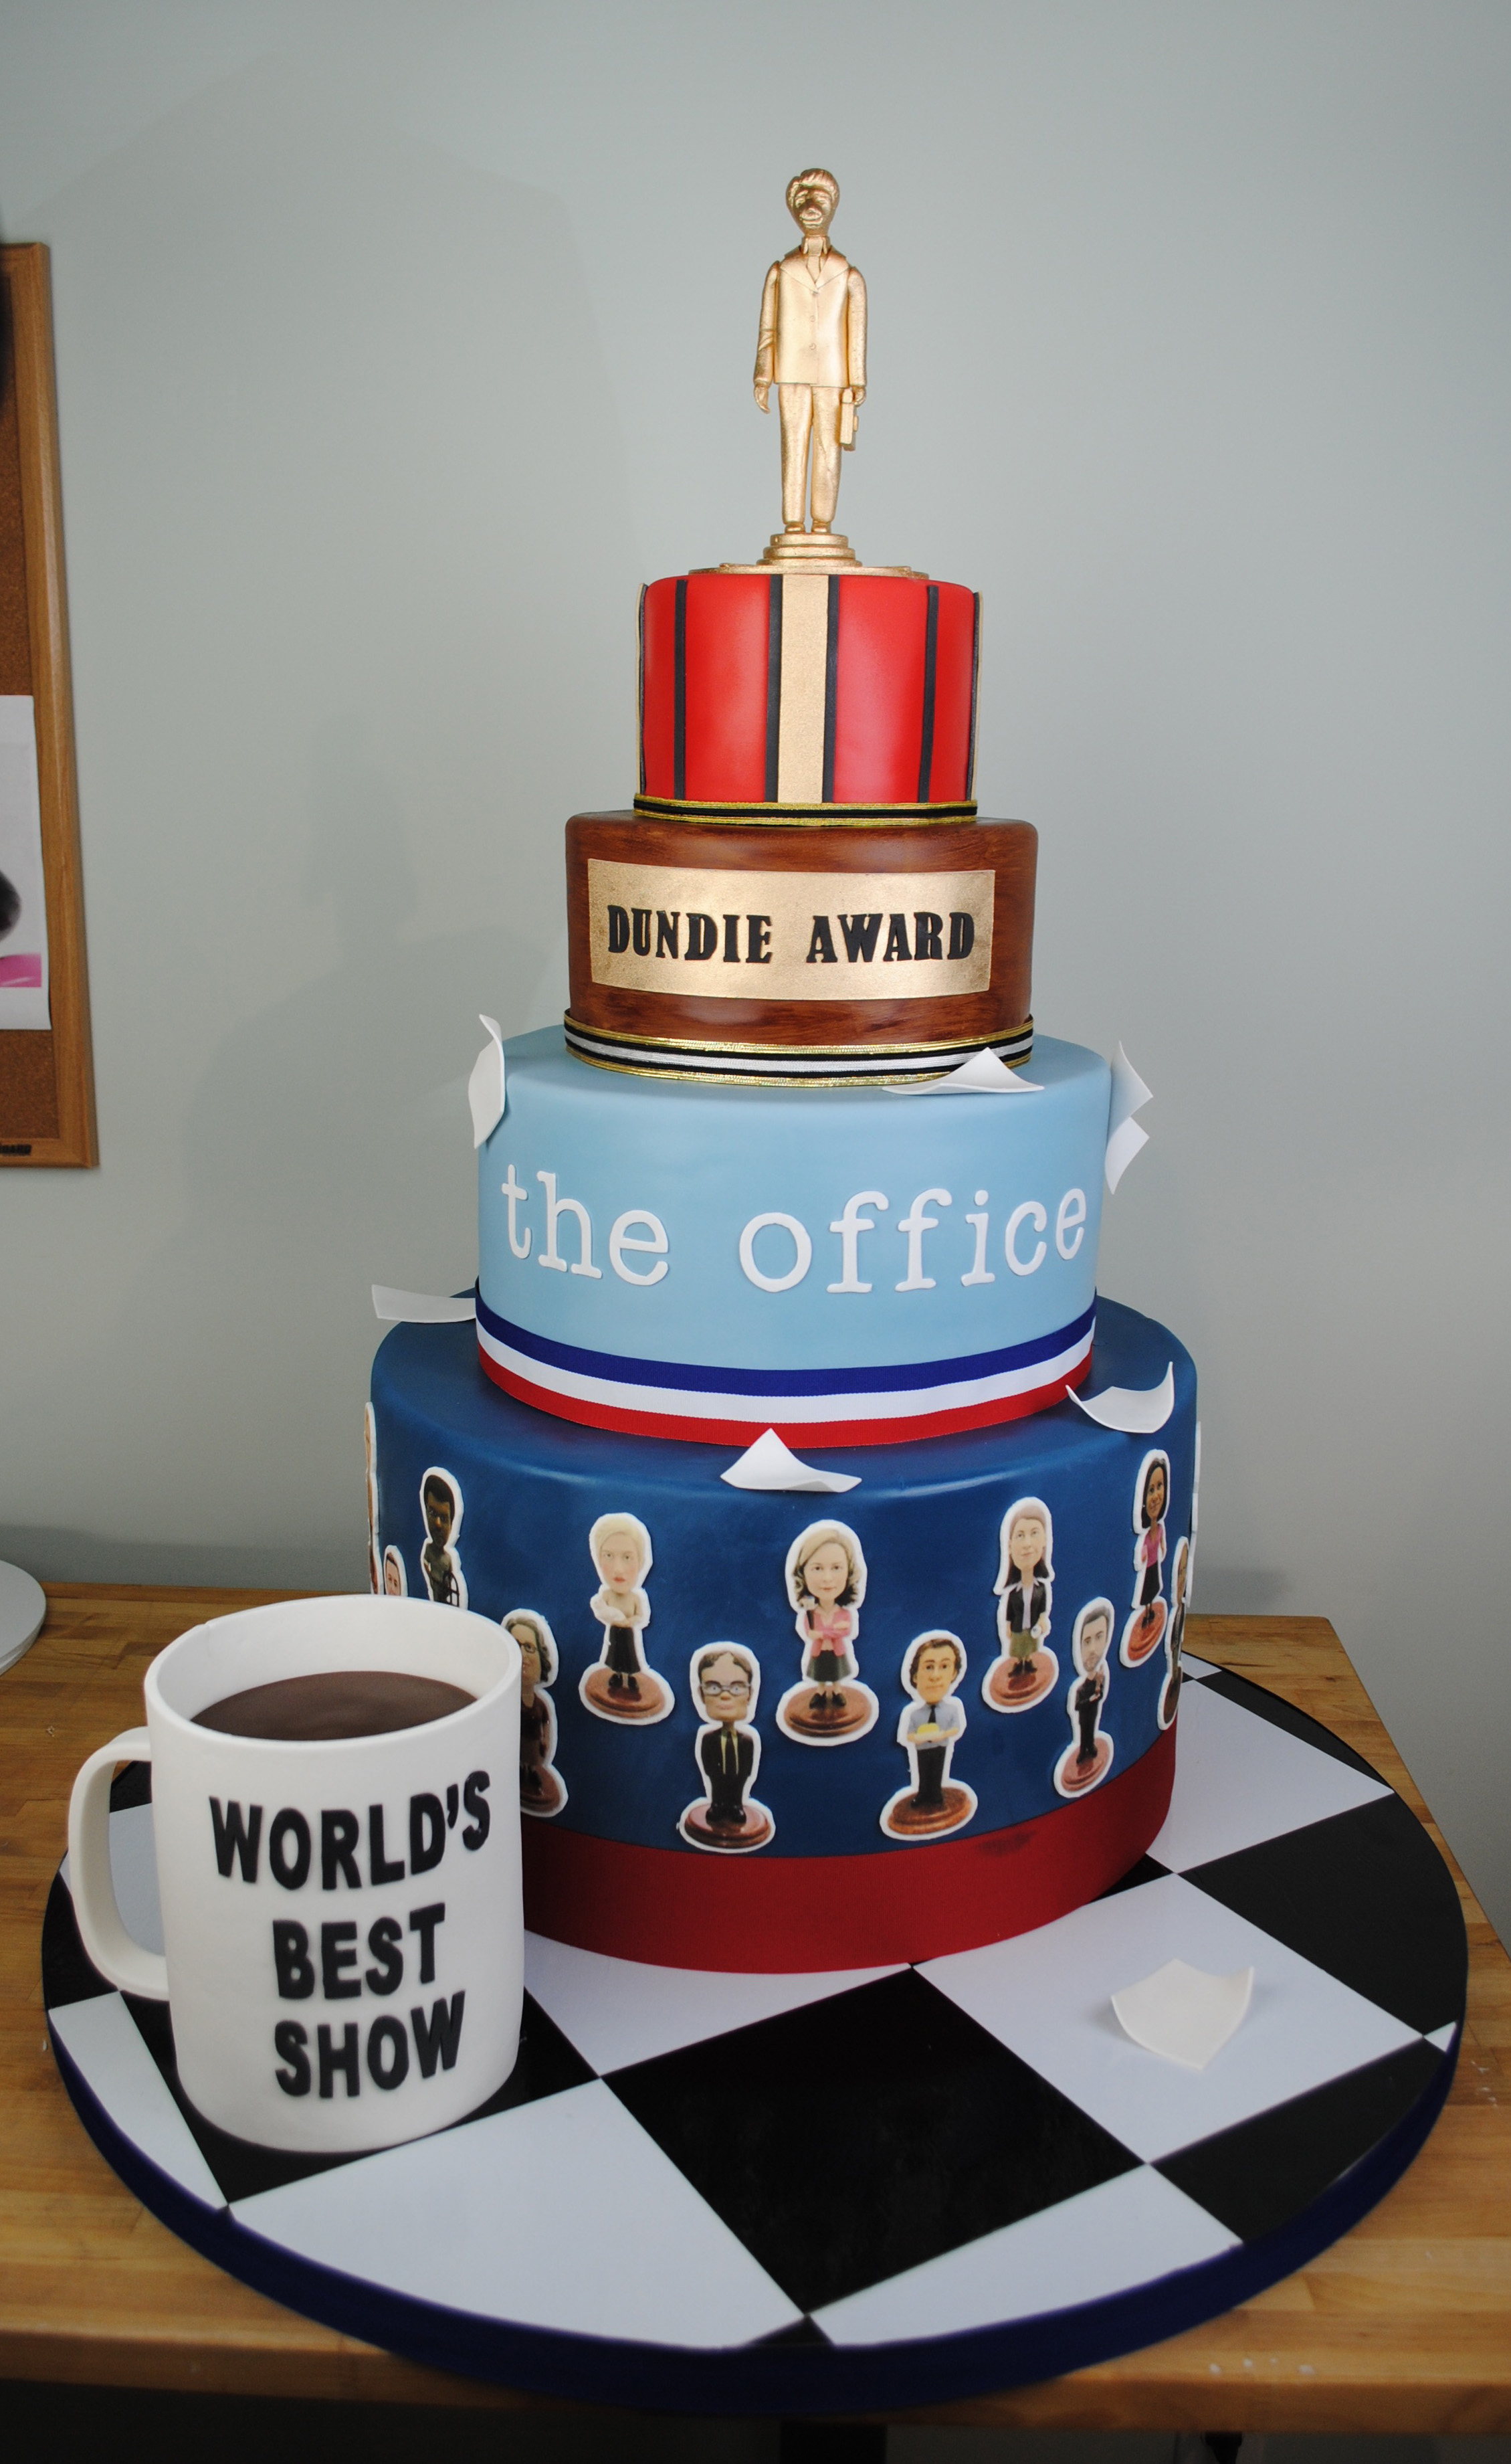 The Office Cake.jpg